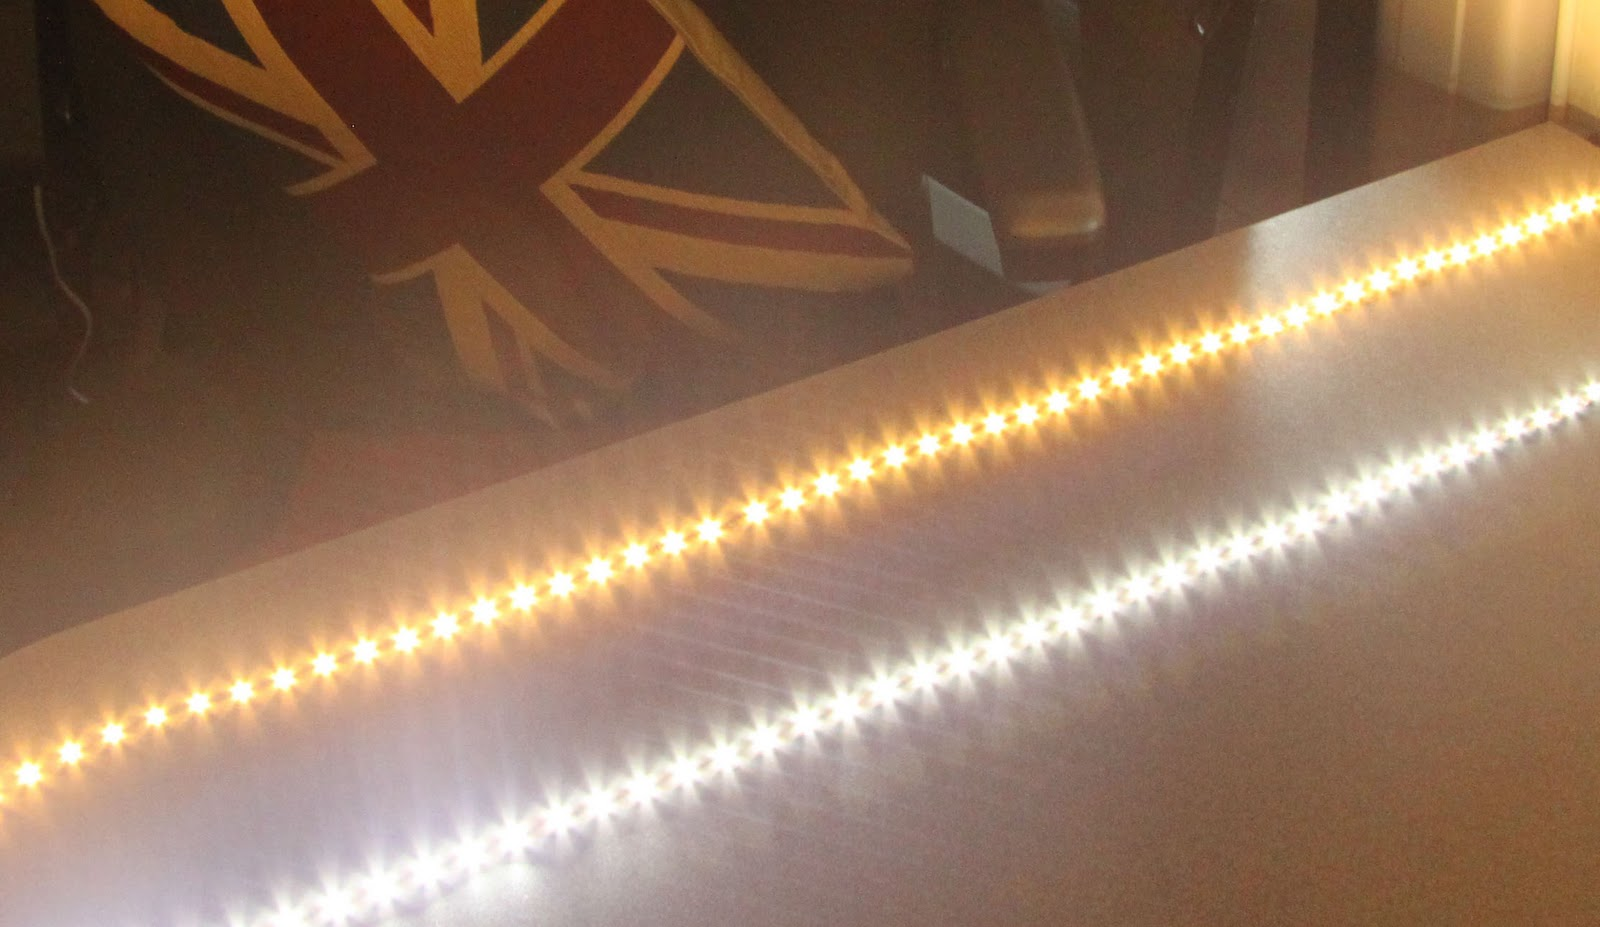 Motorhome adhesive led lighting strips europe by camper the picture to the left shows two different led strips its actually pretty hard to photograph them they are so bright the strip on the left is a warm aloadofball Image collections